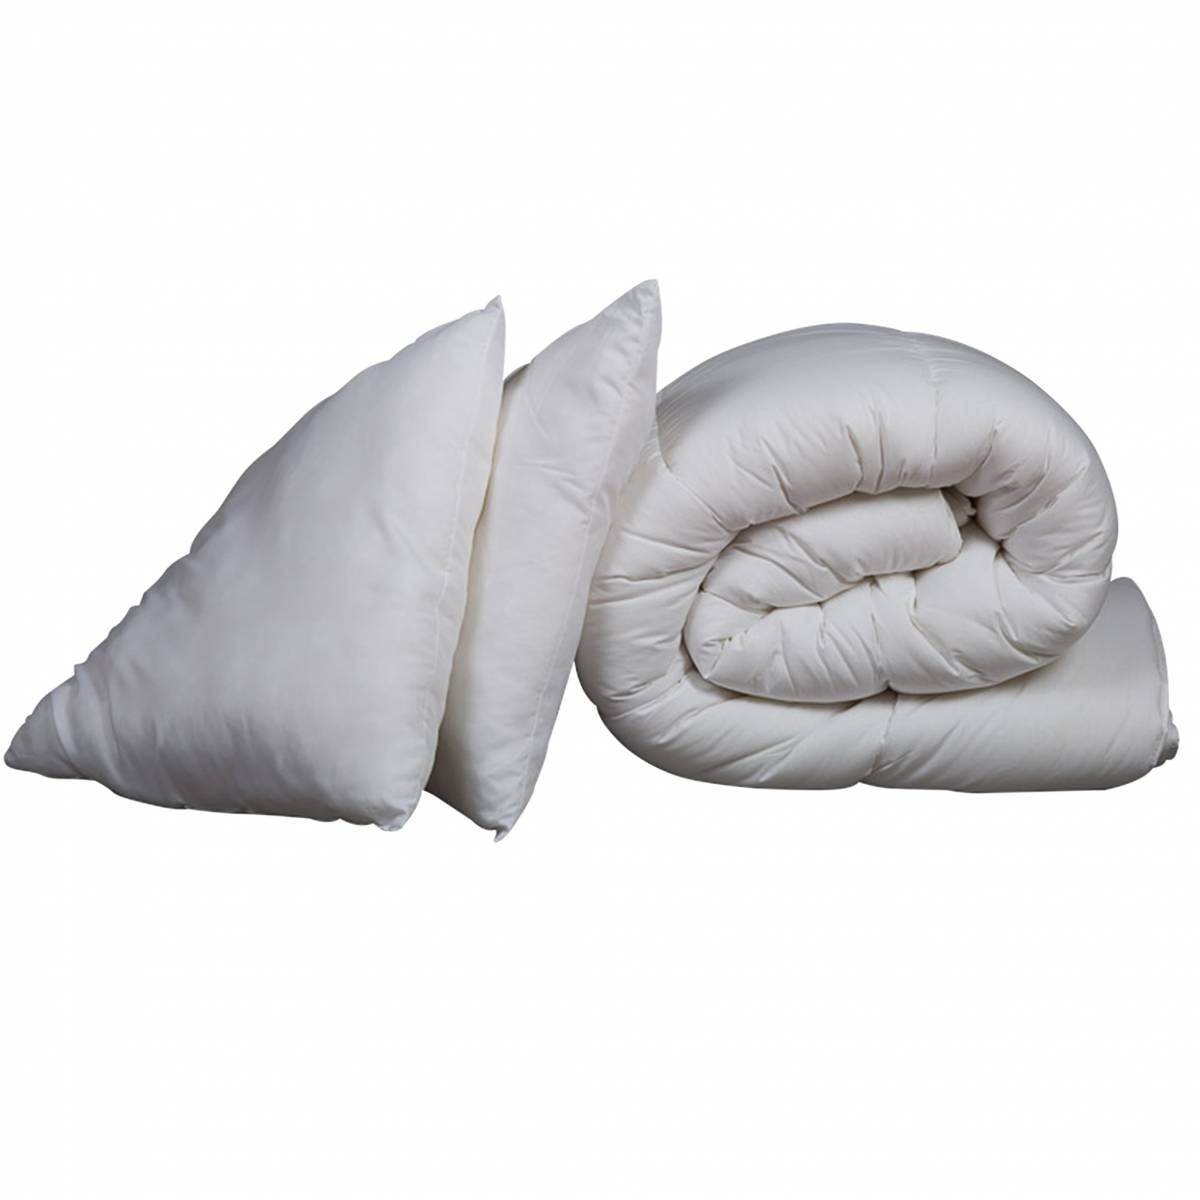 Someo Pack couette hiver 600g 240x220 et oreiller luxe anti-acariens SOMEO